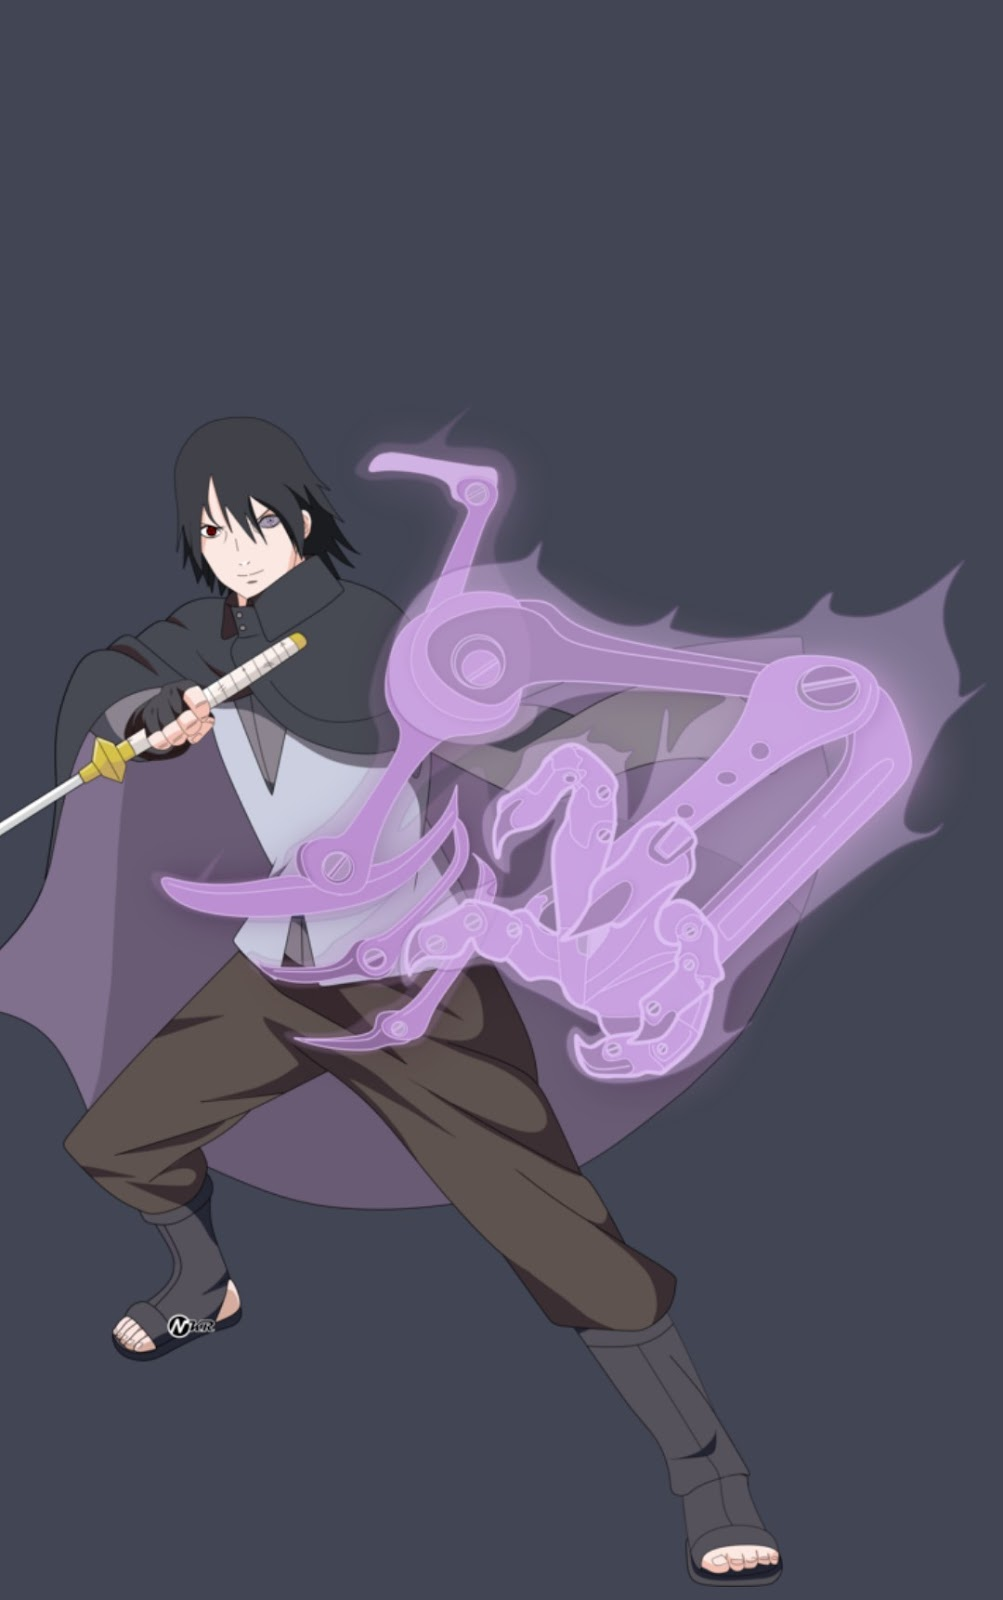 15. Download wallpaper uchiha sasuke vektor untuk android dan whatsApp chat